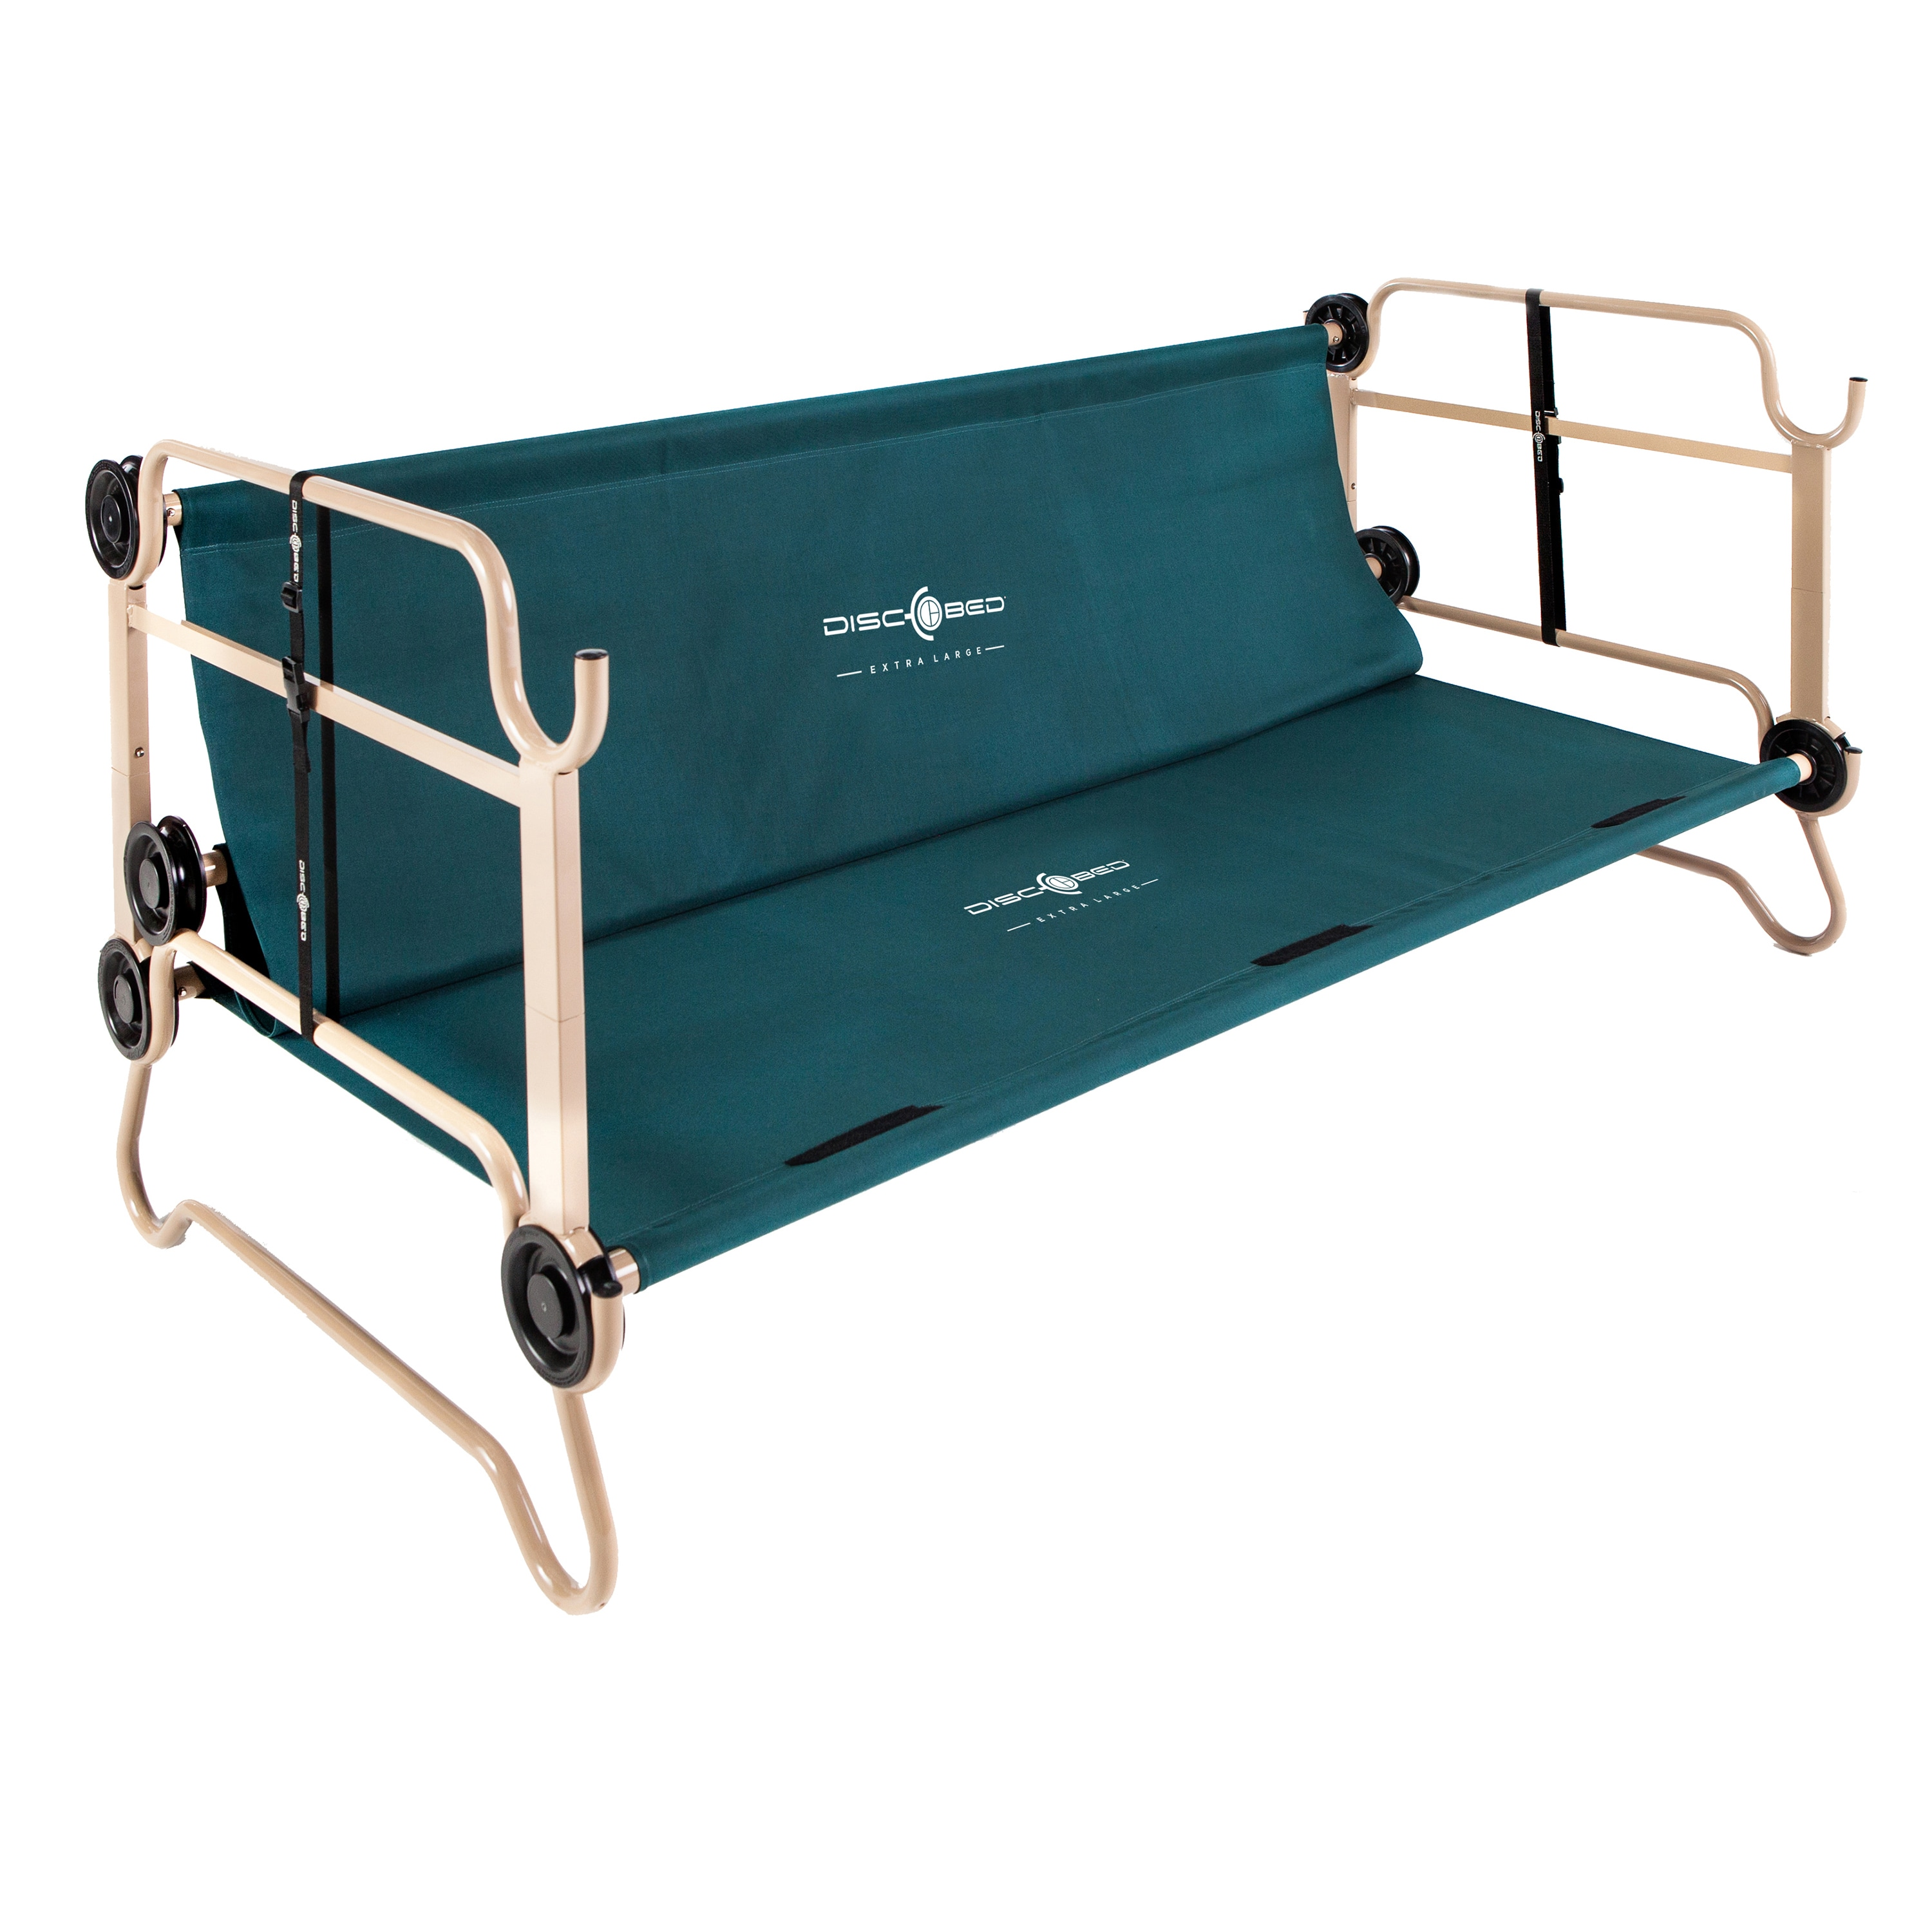 Buy Cots, Airbeds, & Sleeping Pads Online at Overstock.com | Our ...